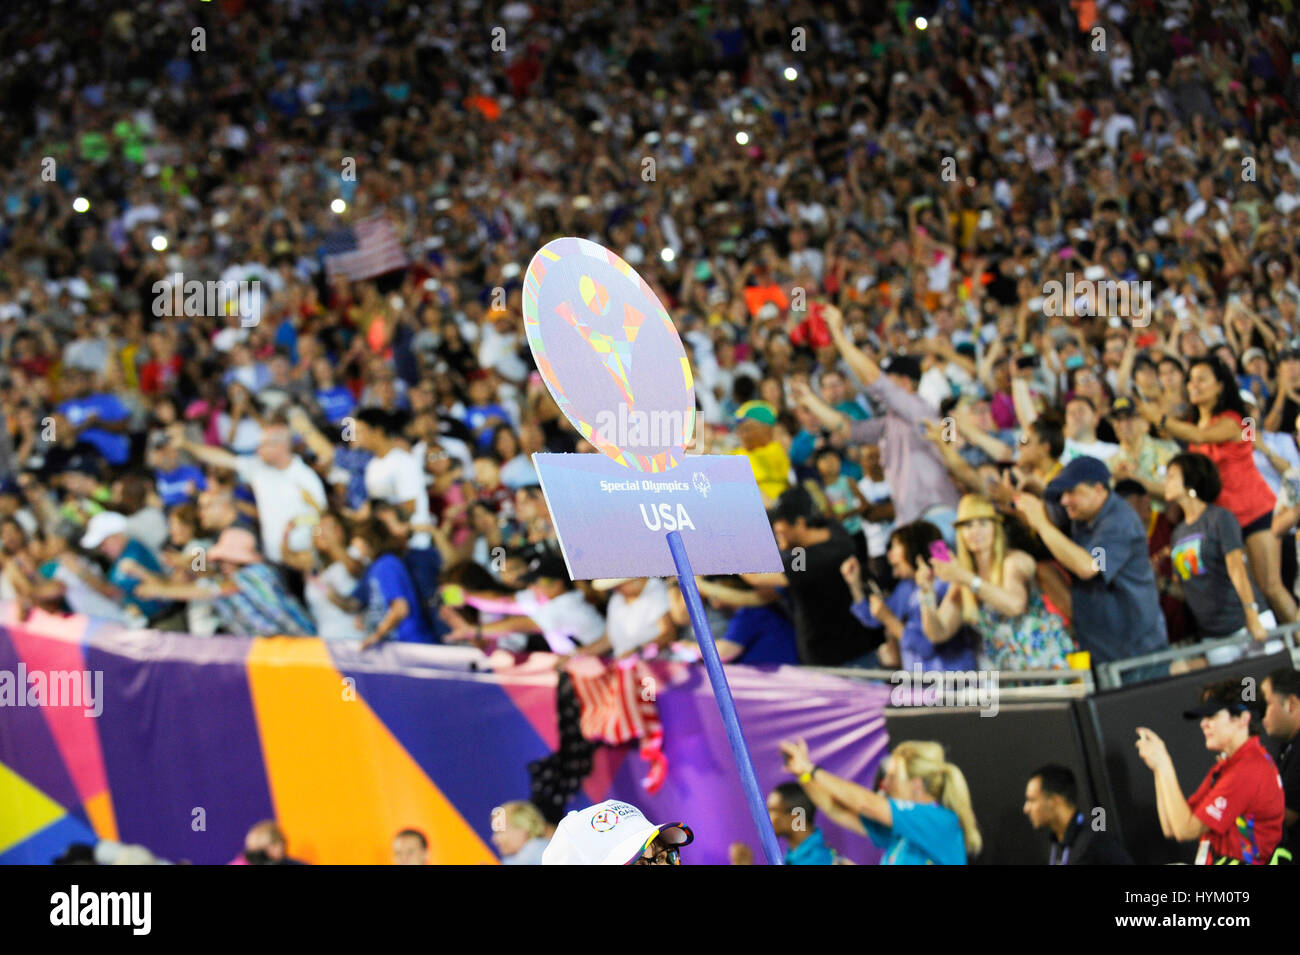 at the Special Olympics World Games Opening Ceremony at the Coliseum on July 25th, 2015 in Los Angeles, California. - Stock Image